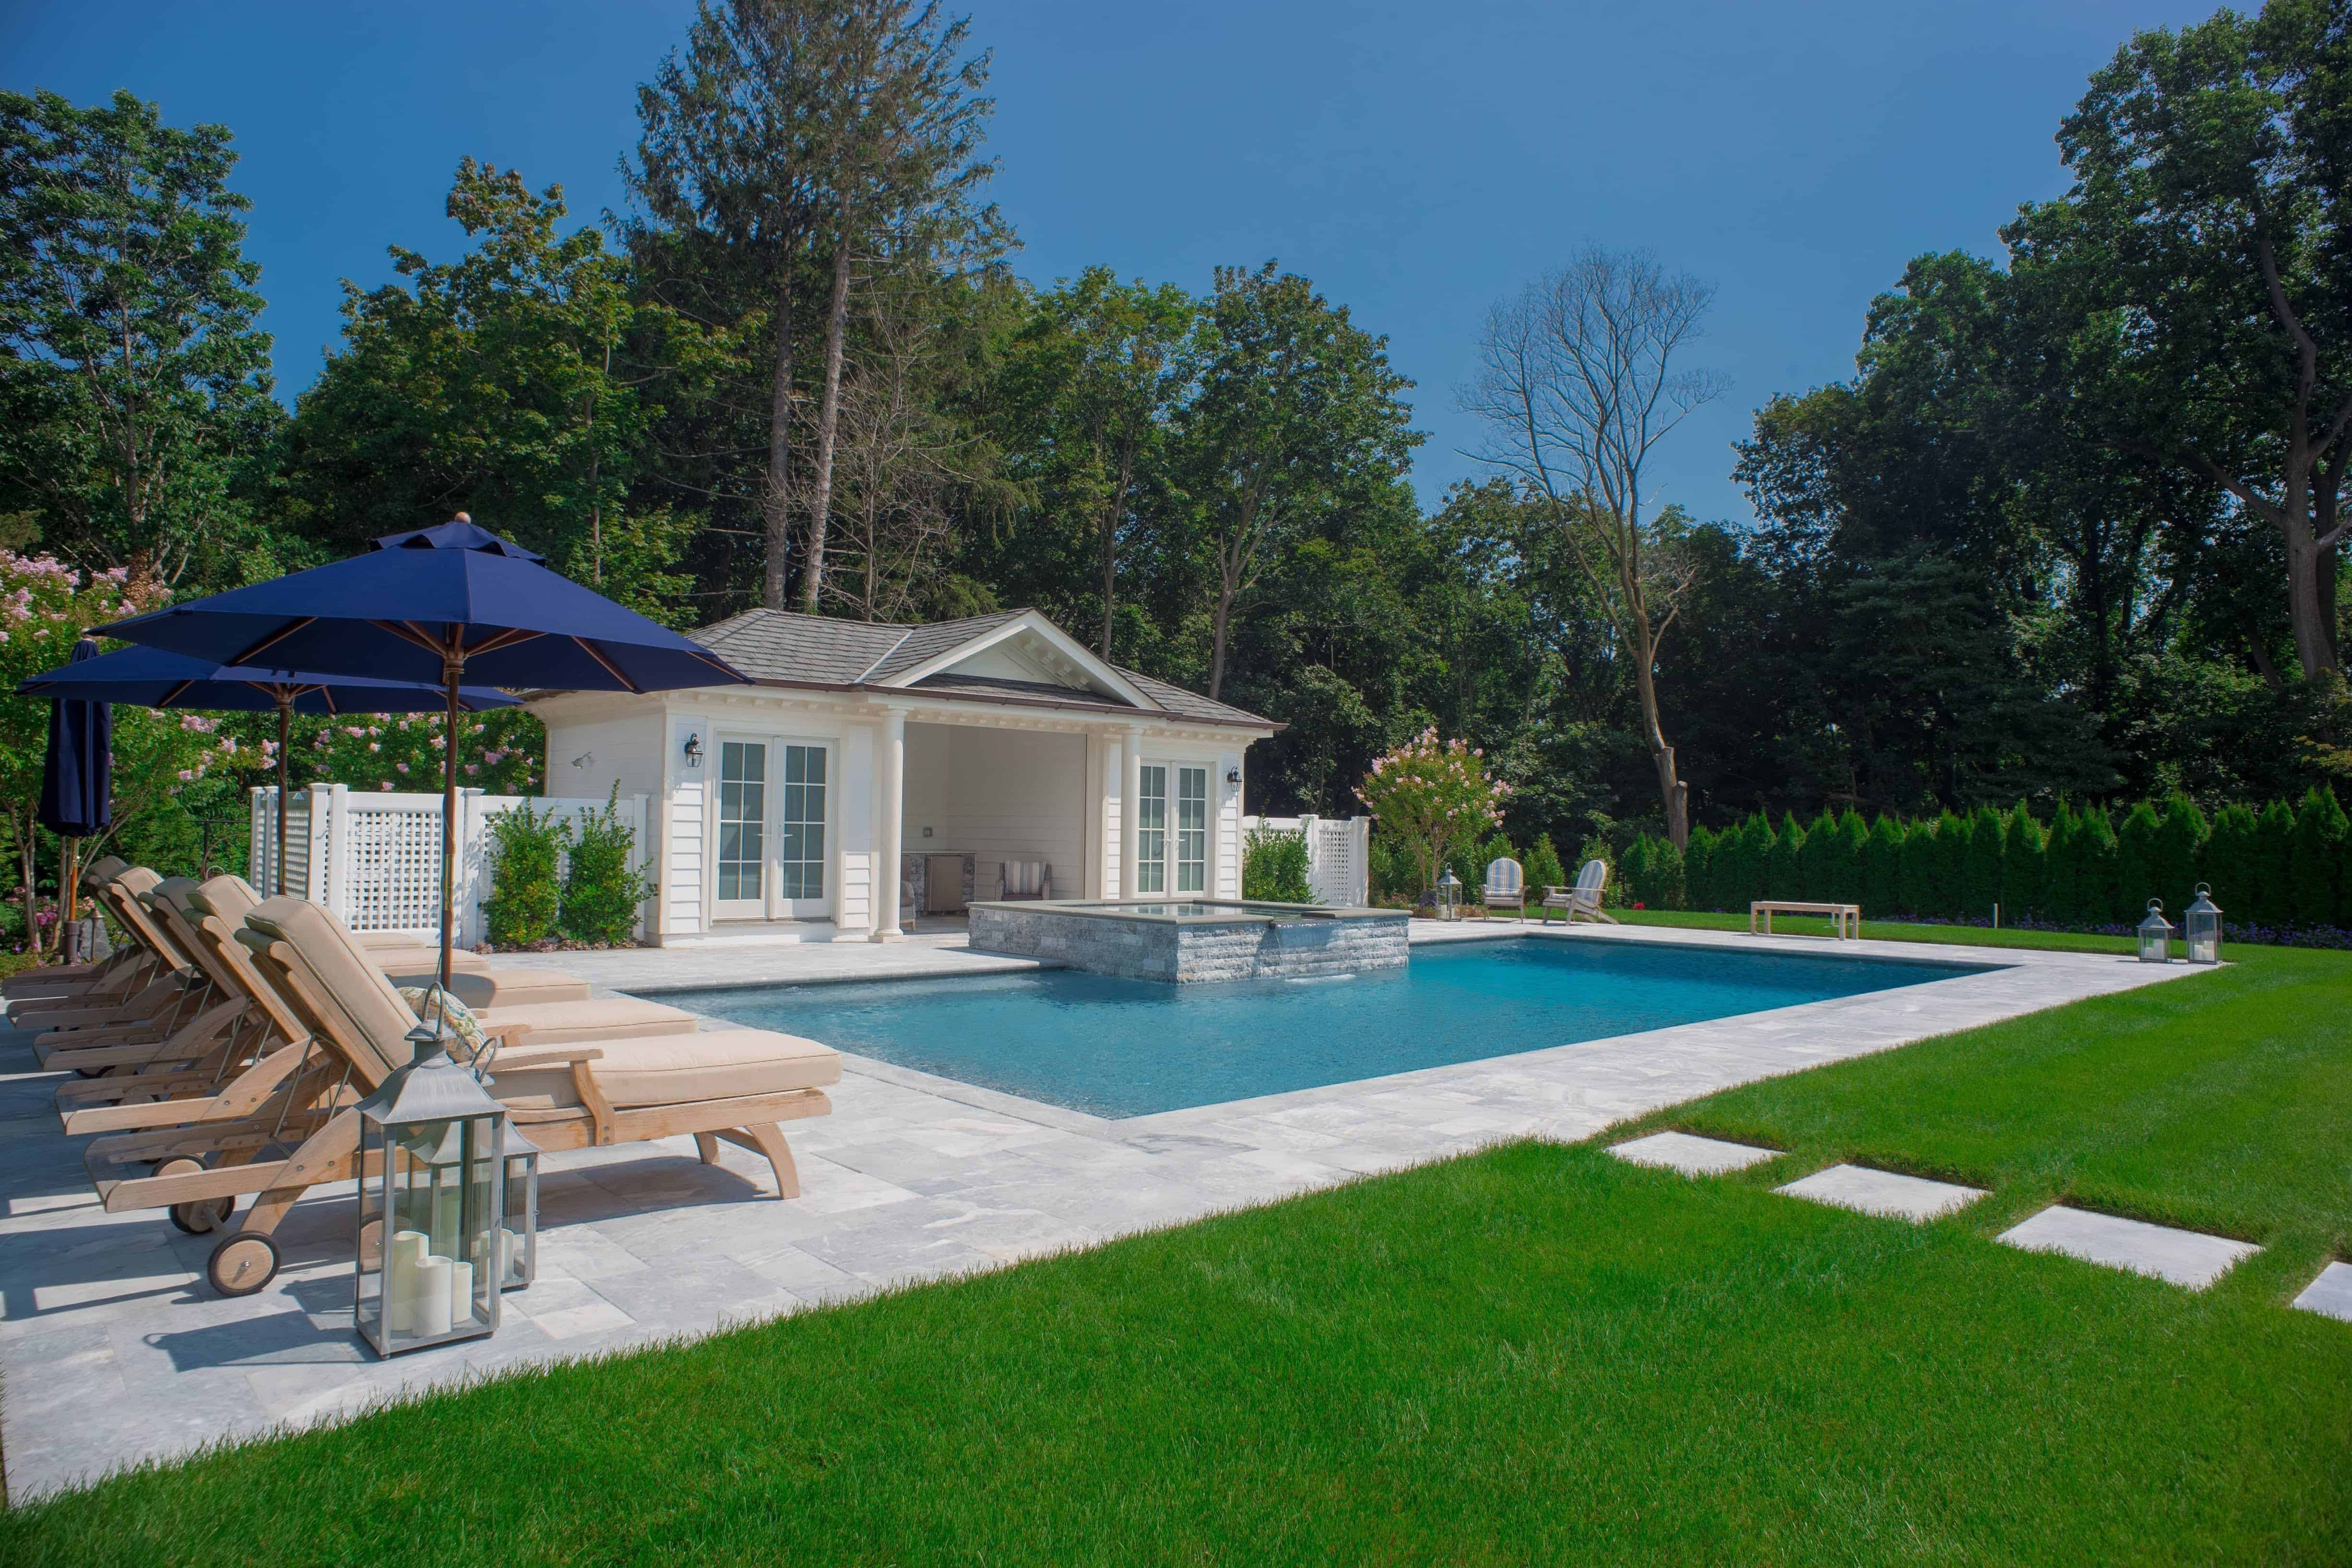 20' x 40' Gunite Pool with Raised 8' x 8' and Spill Over in Plandome Manor, Long Island NY